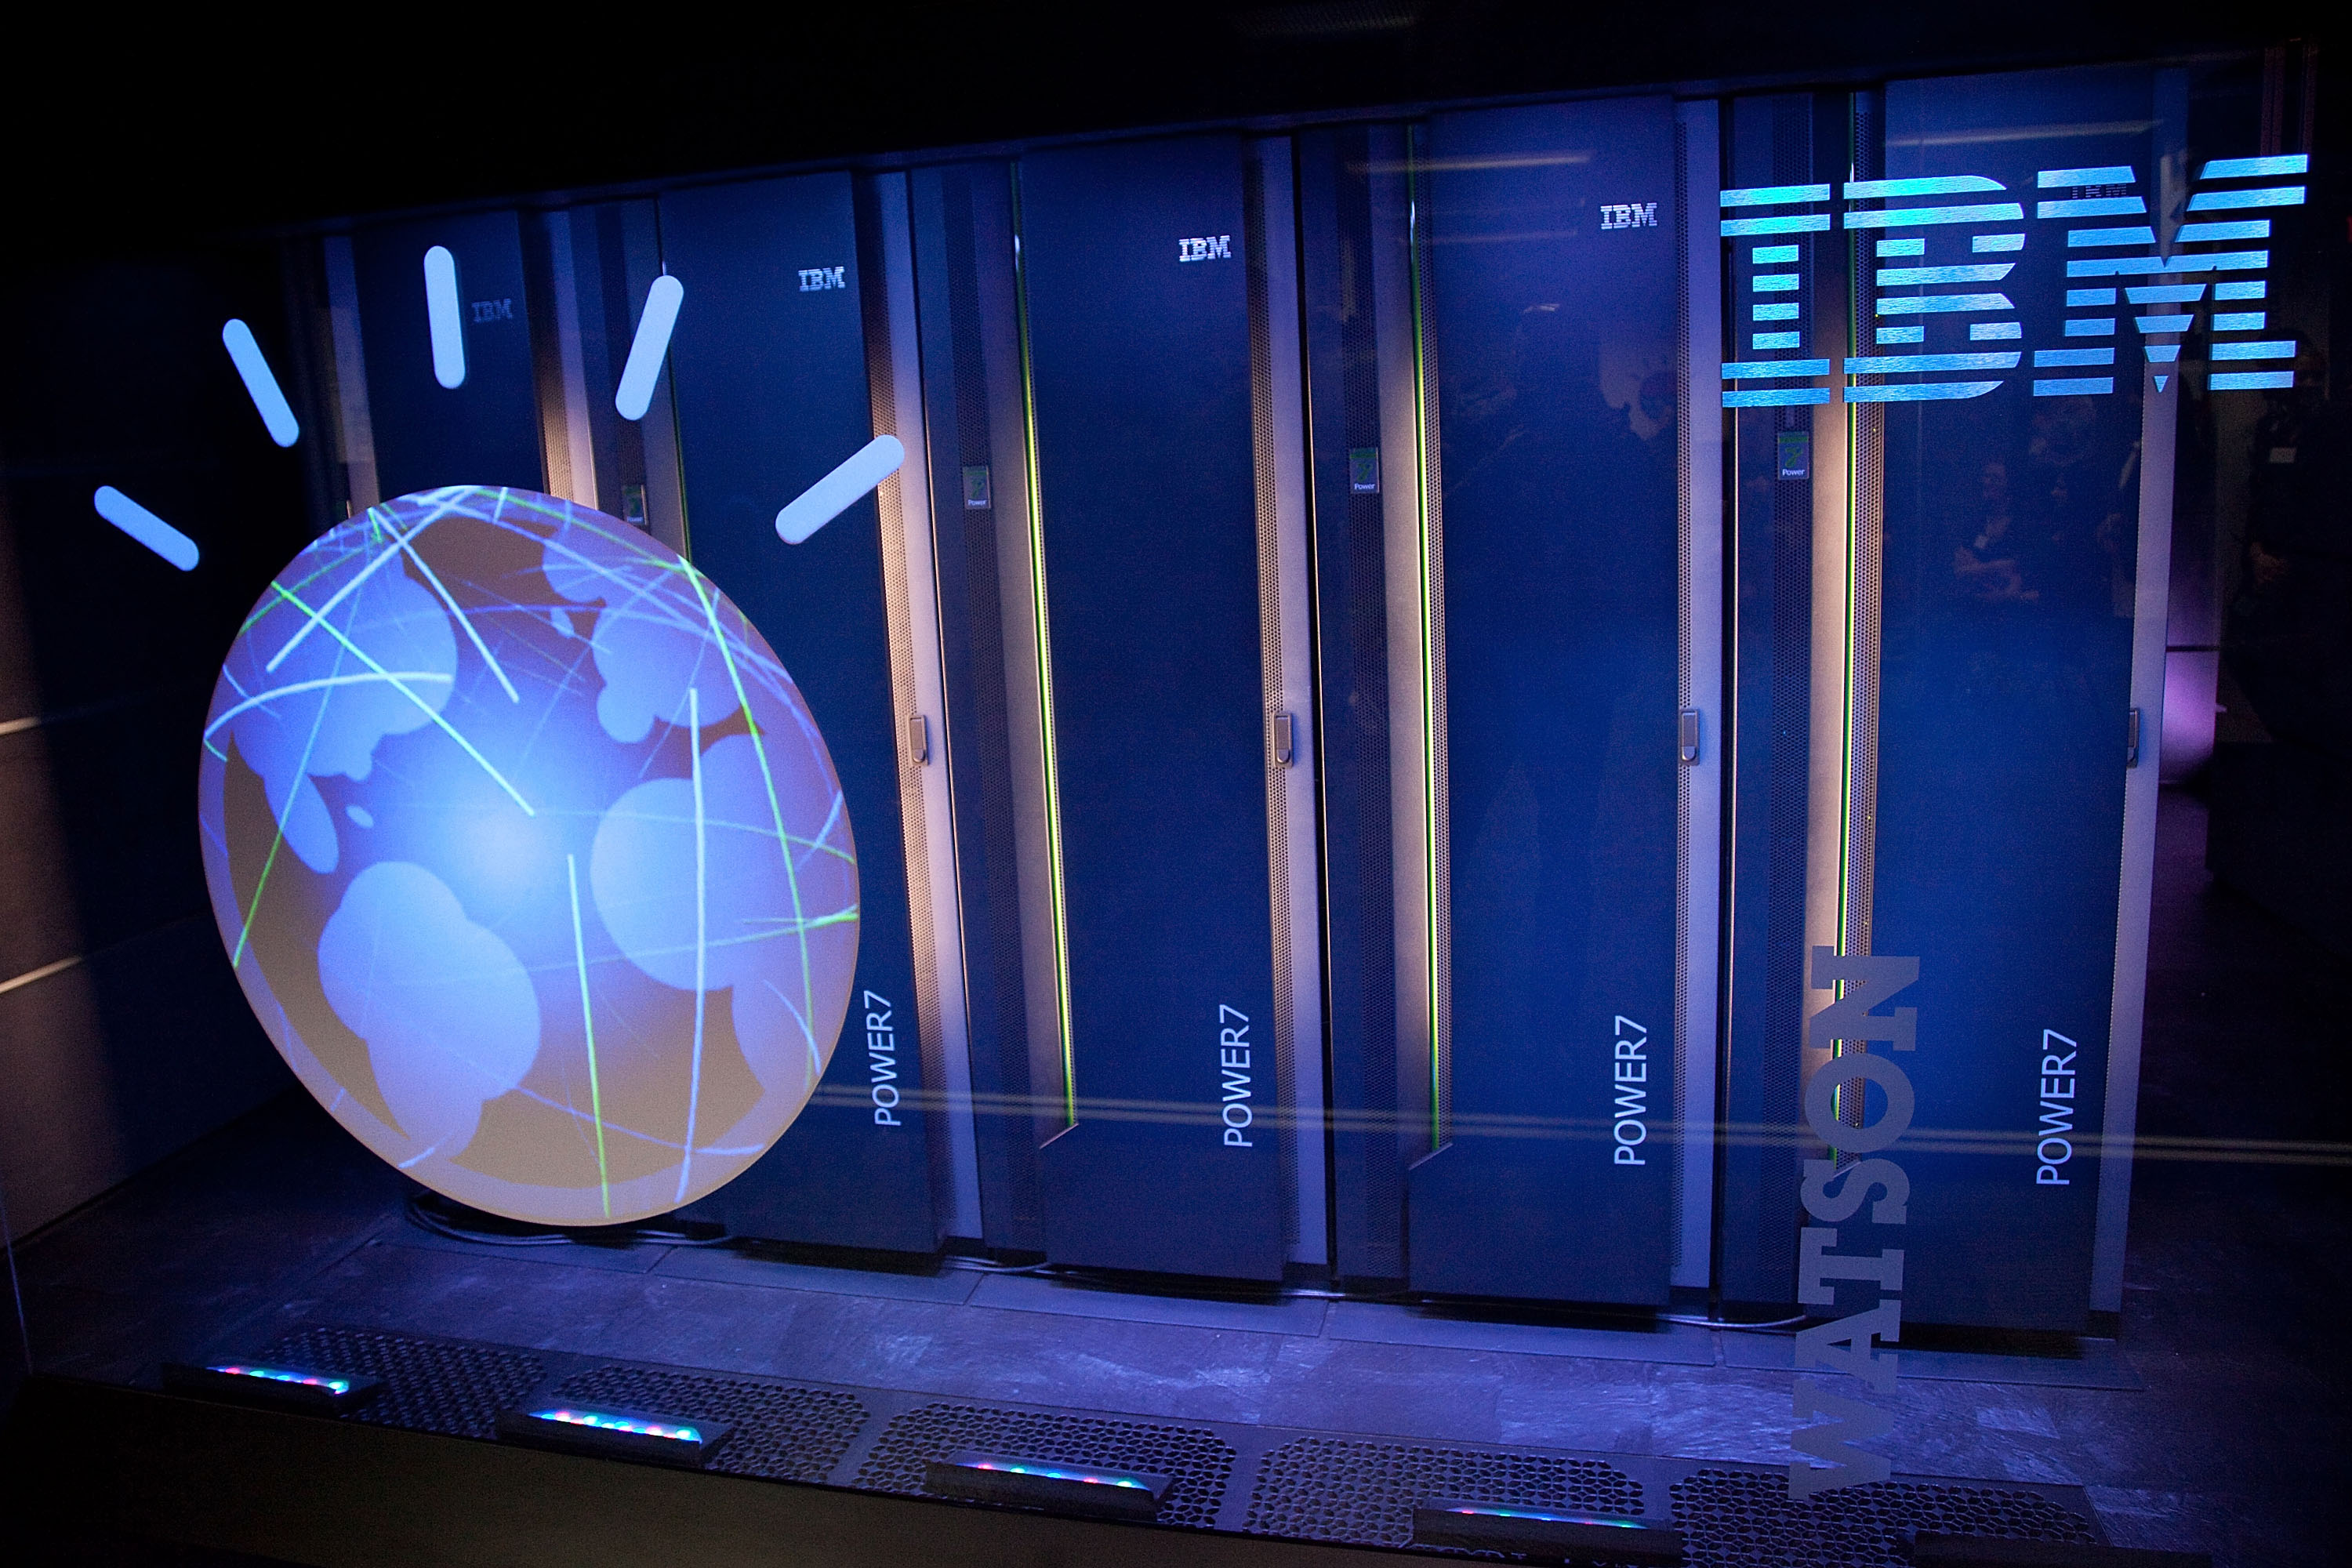 A general view of IBM's 'Watson' computing system at a press conference at the IBM T.J. Watson Research Center on January 13, 2011 in Yorktown Heights, New York.